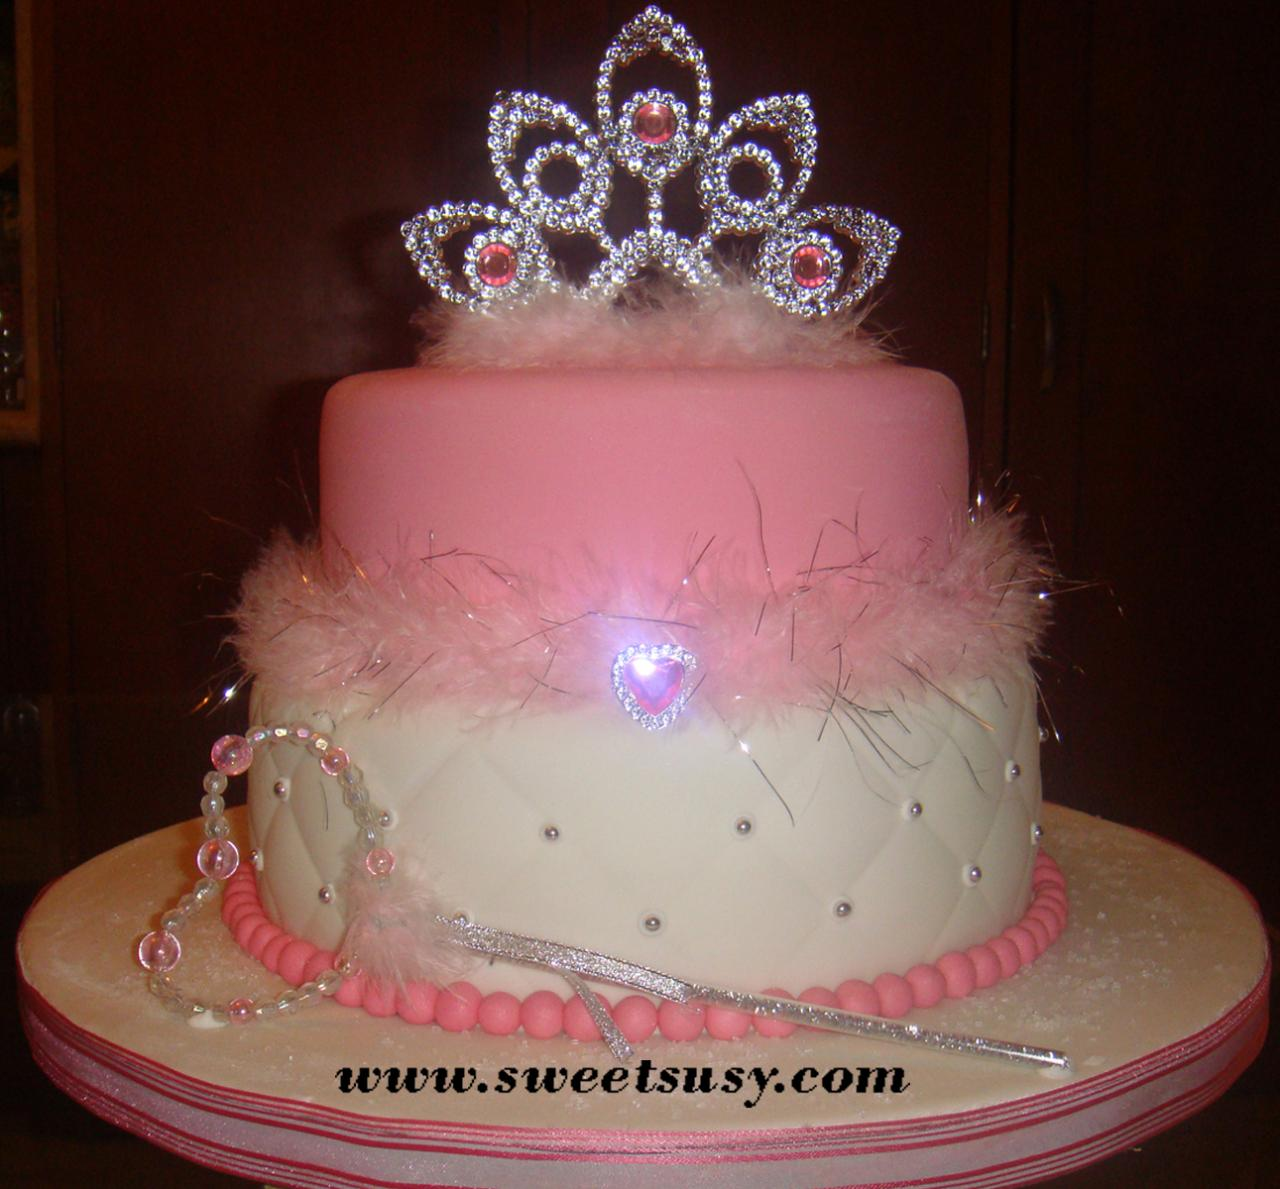 Princess Cake Design : 1st Birthday Ideas on Pinterest Princess Cakes, Princess Party and Princess Party Supplies